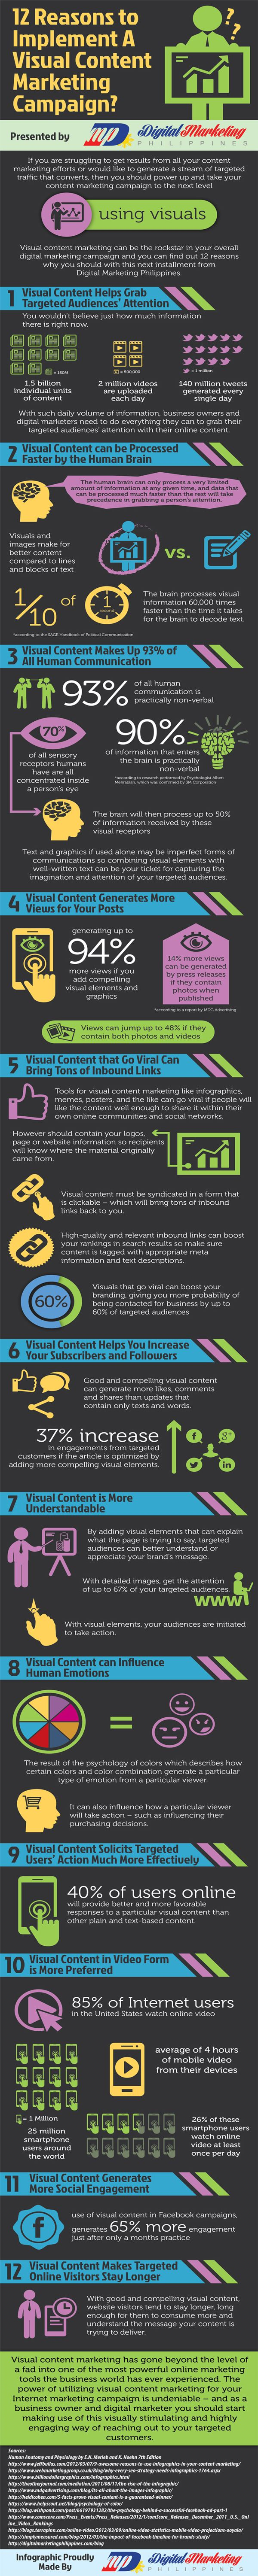 12 Reasons to Integrate Visual Content Into Your Marketing Campaigns [Infographic]